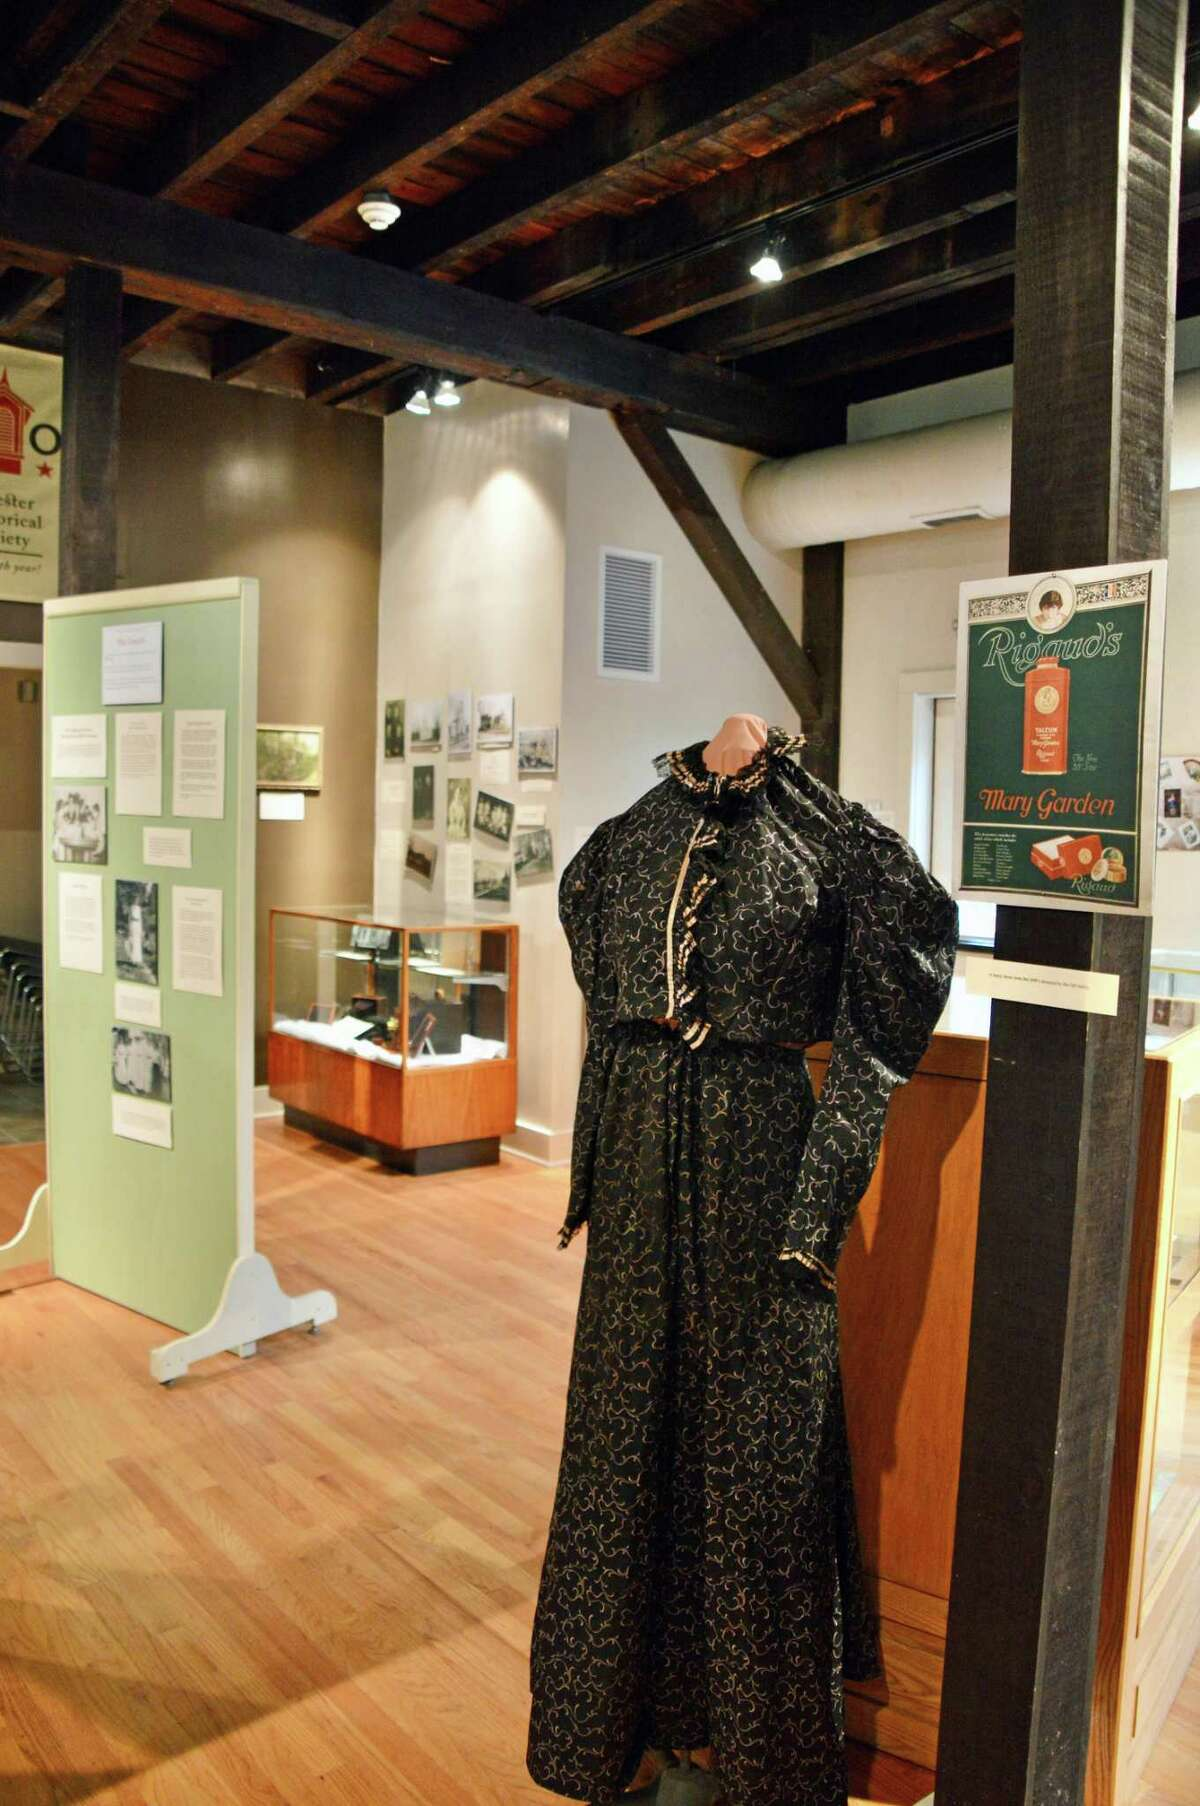 The exhibit, 'Before the Vote - Ahead of Their Time' tells the stories of women who were leaders in education, religion, culture, business and industry at the Chester Museum at The Mill.